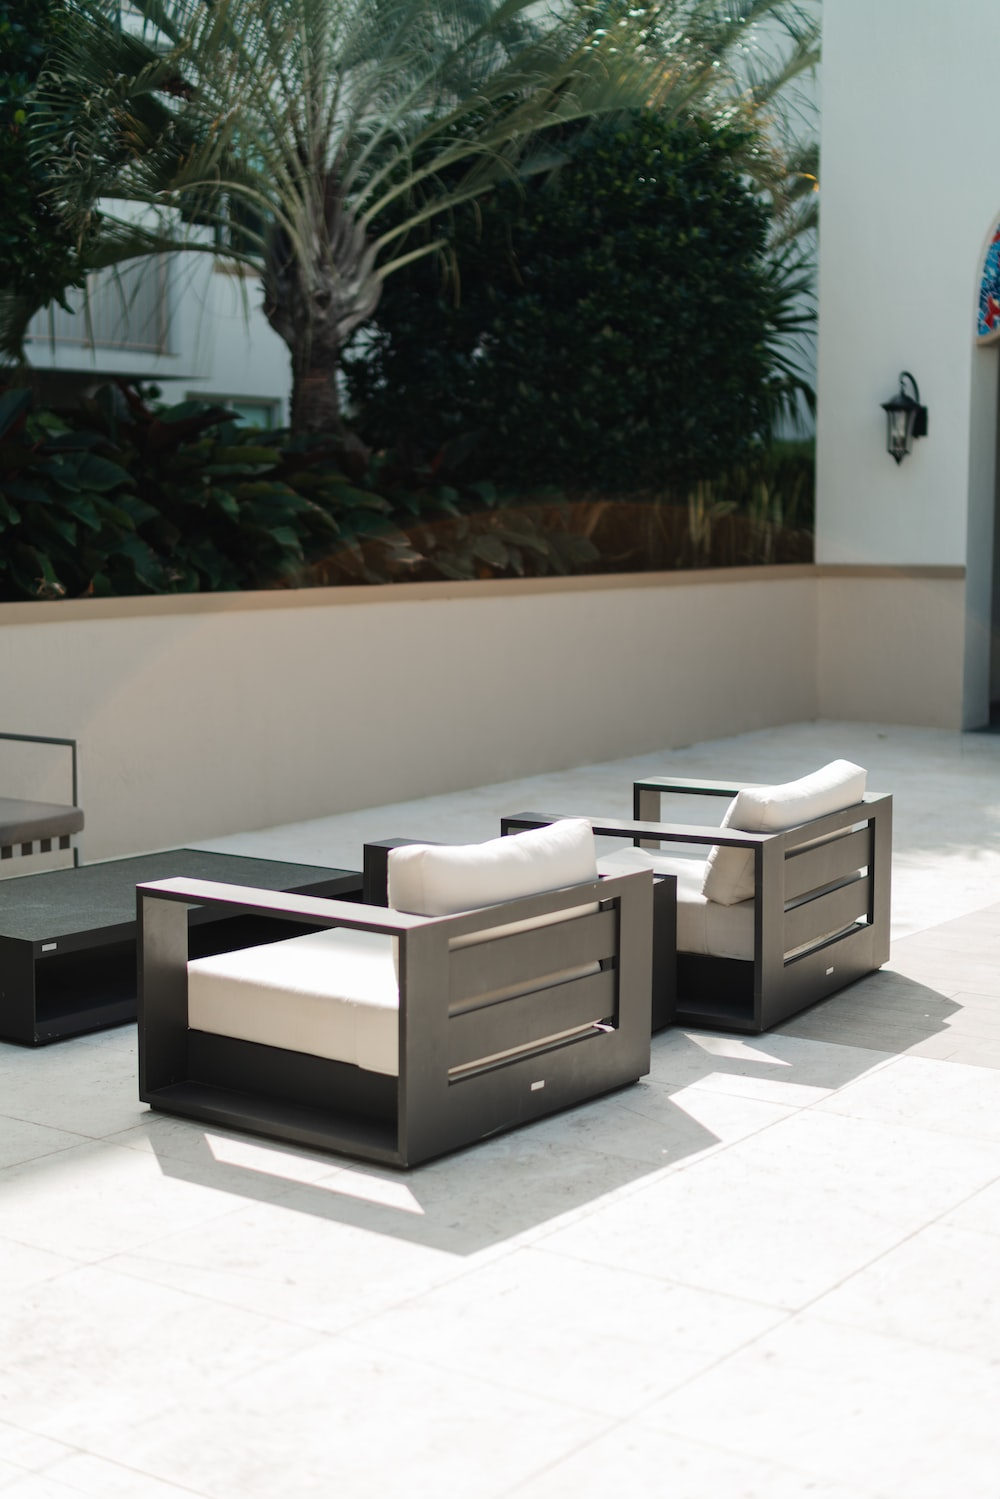 two black-and-white armchairs